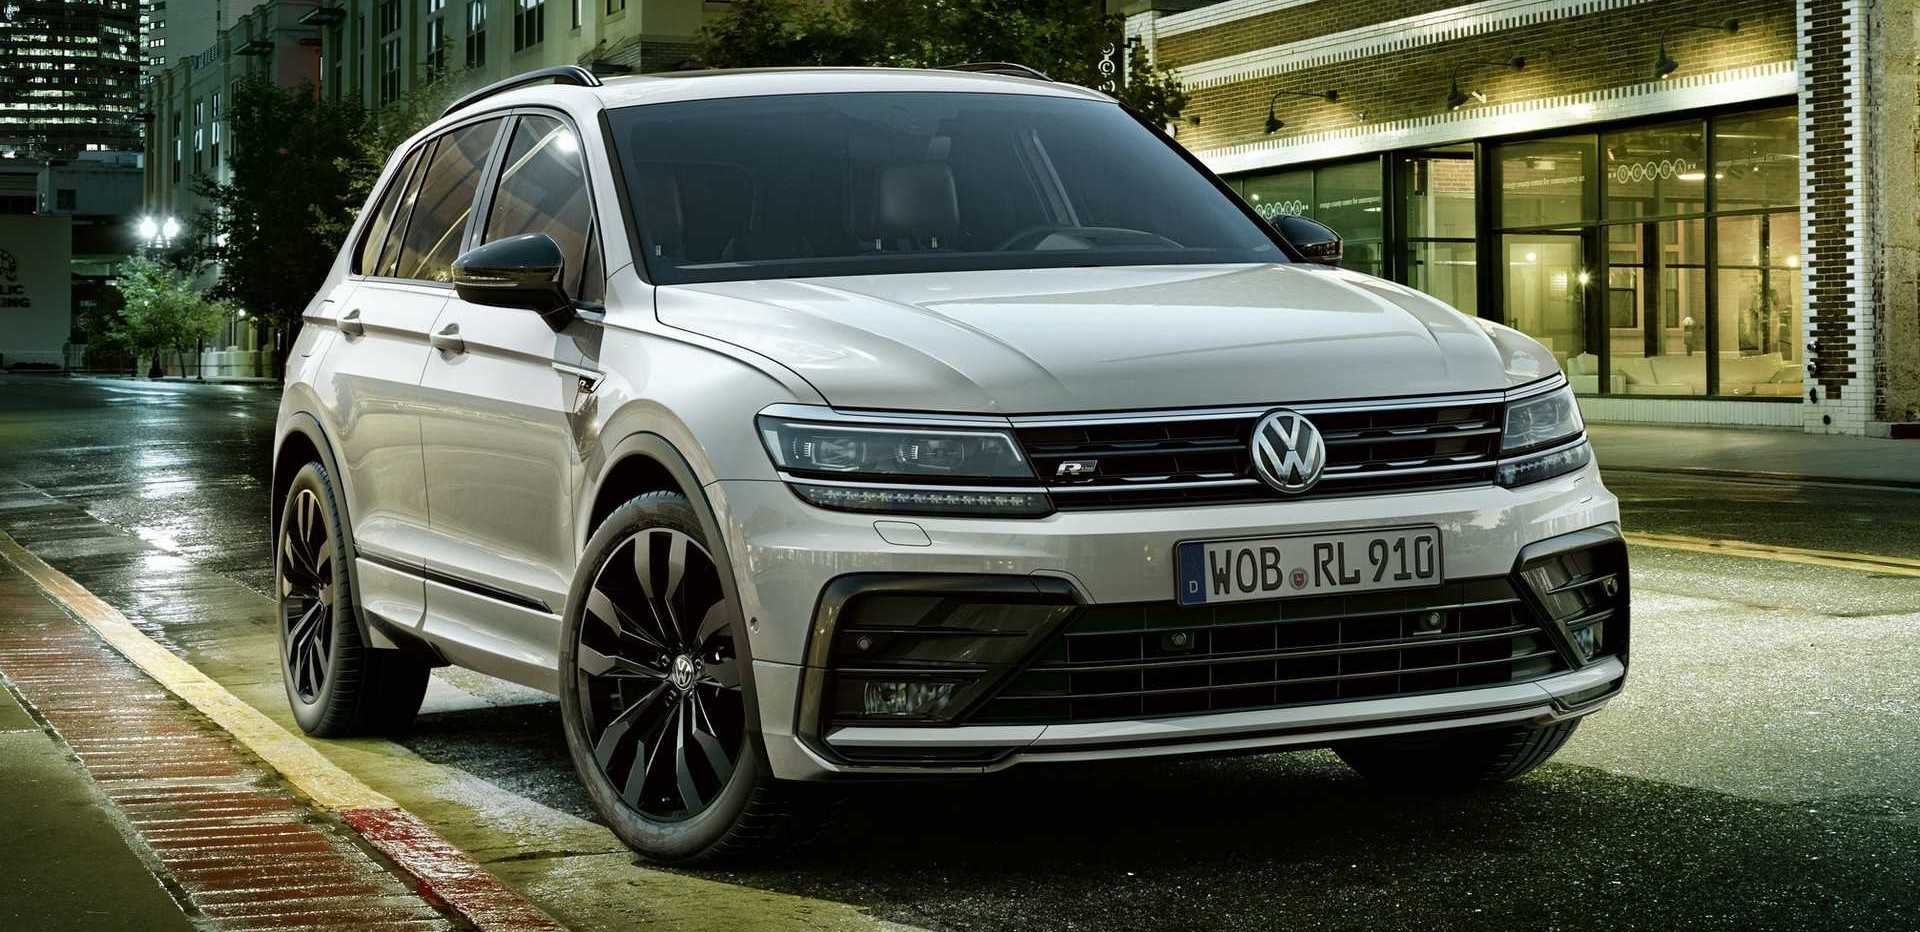 VW Tiguan Adds Pizzazz In Europe With Black Style Package